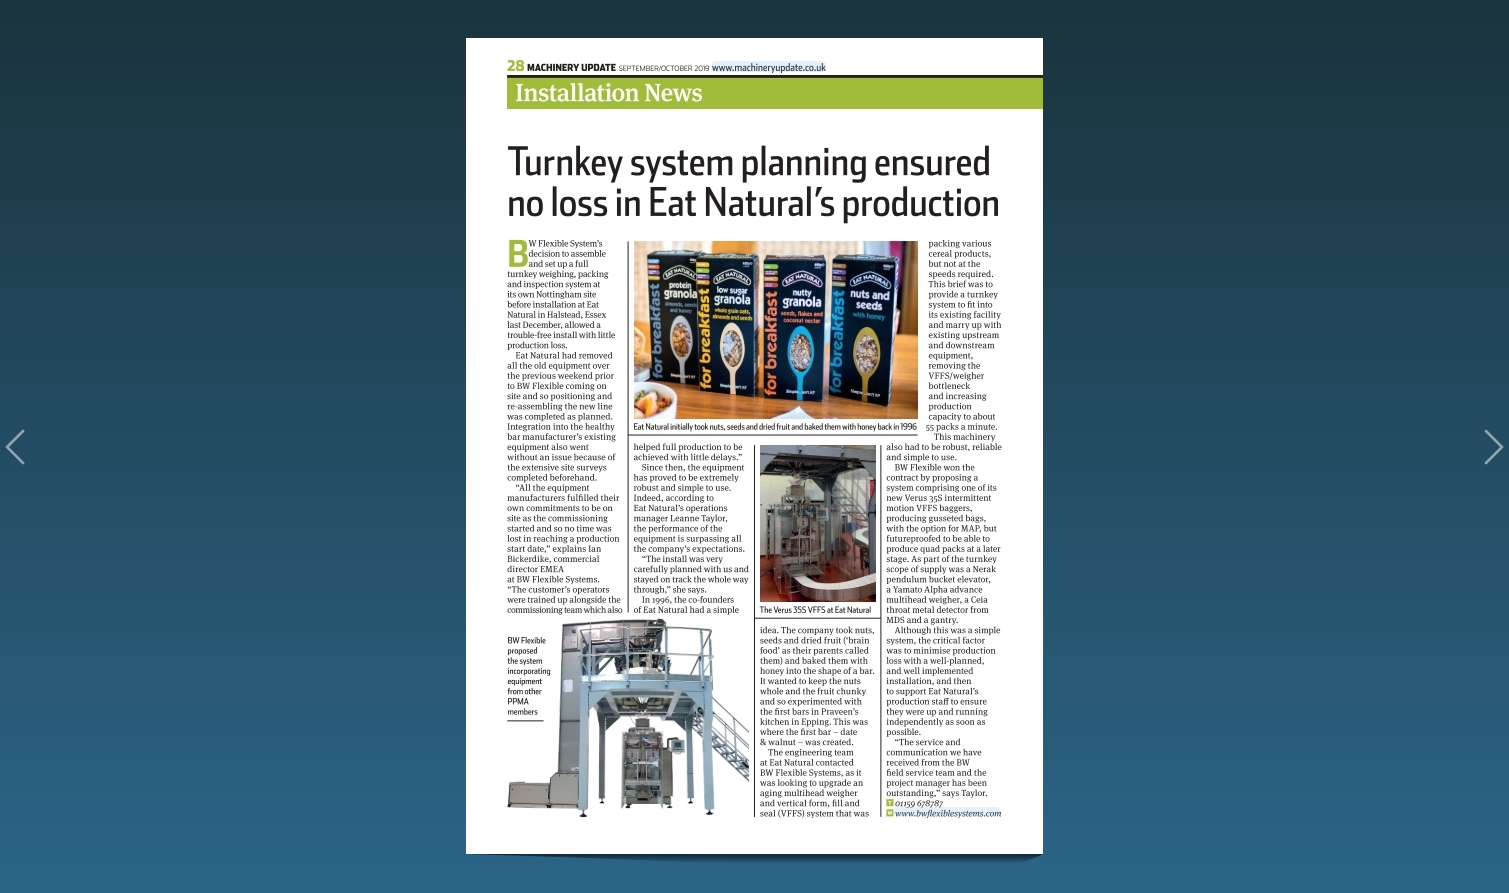 """Turnkey system planning ensured no loss in Eat Natural"